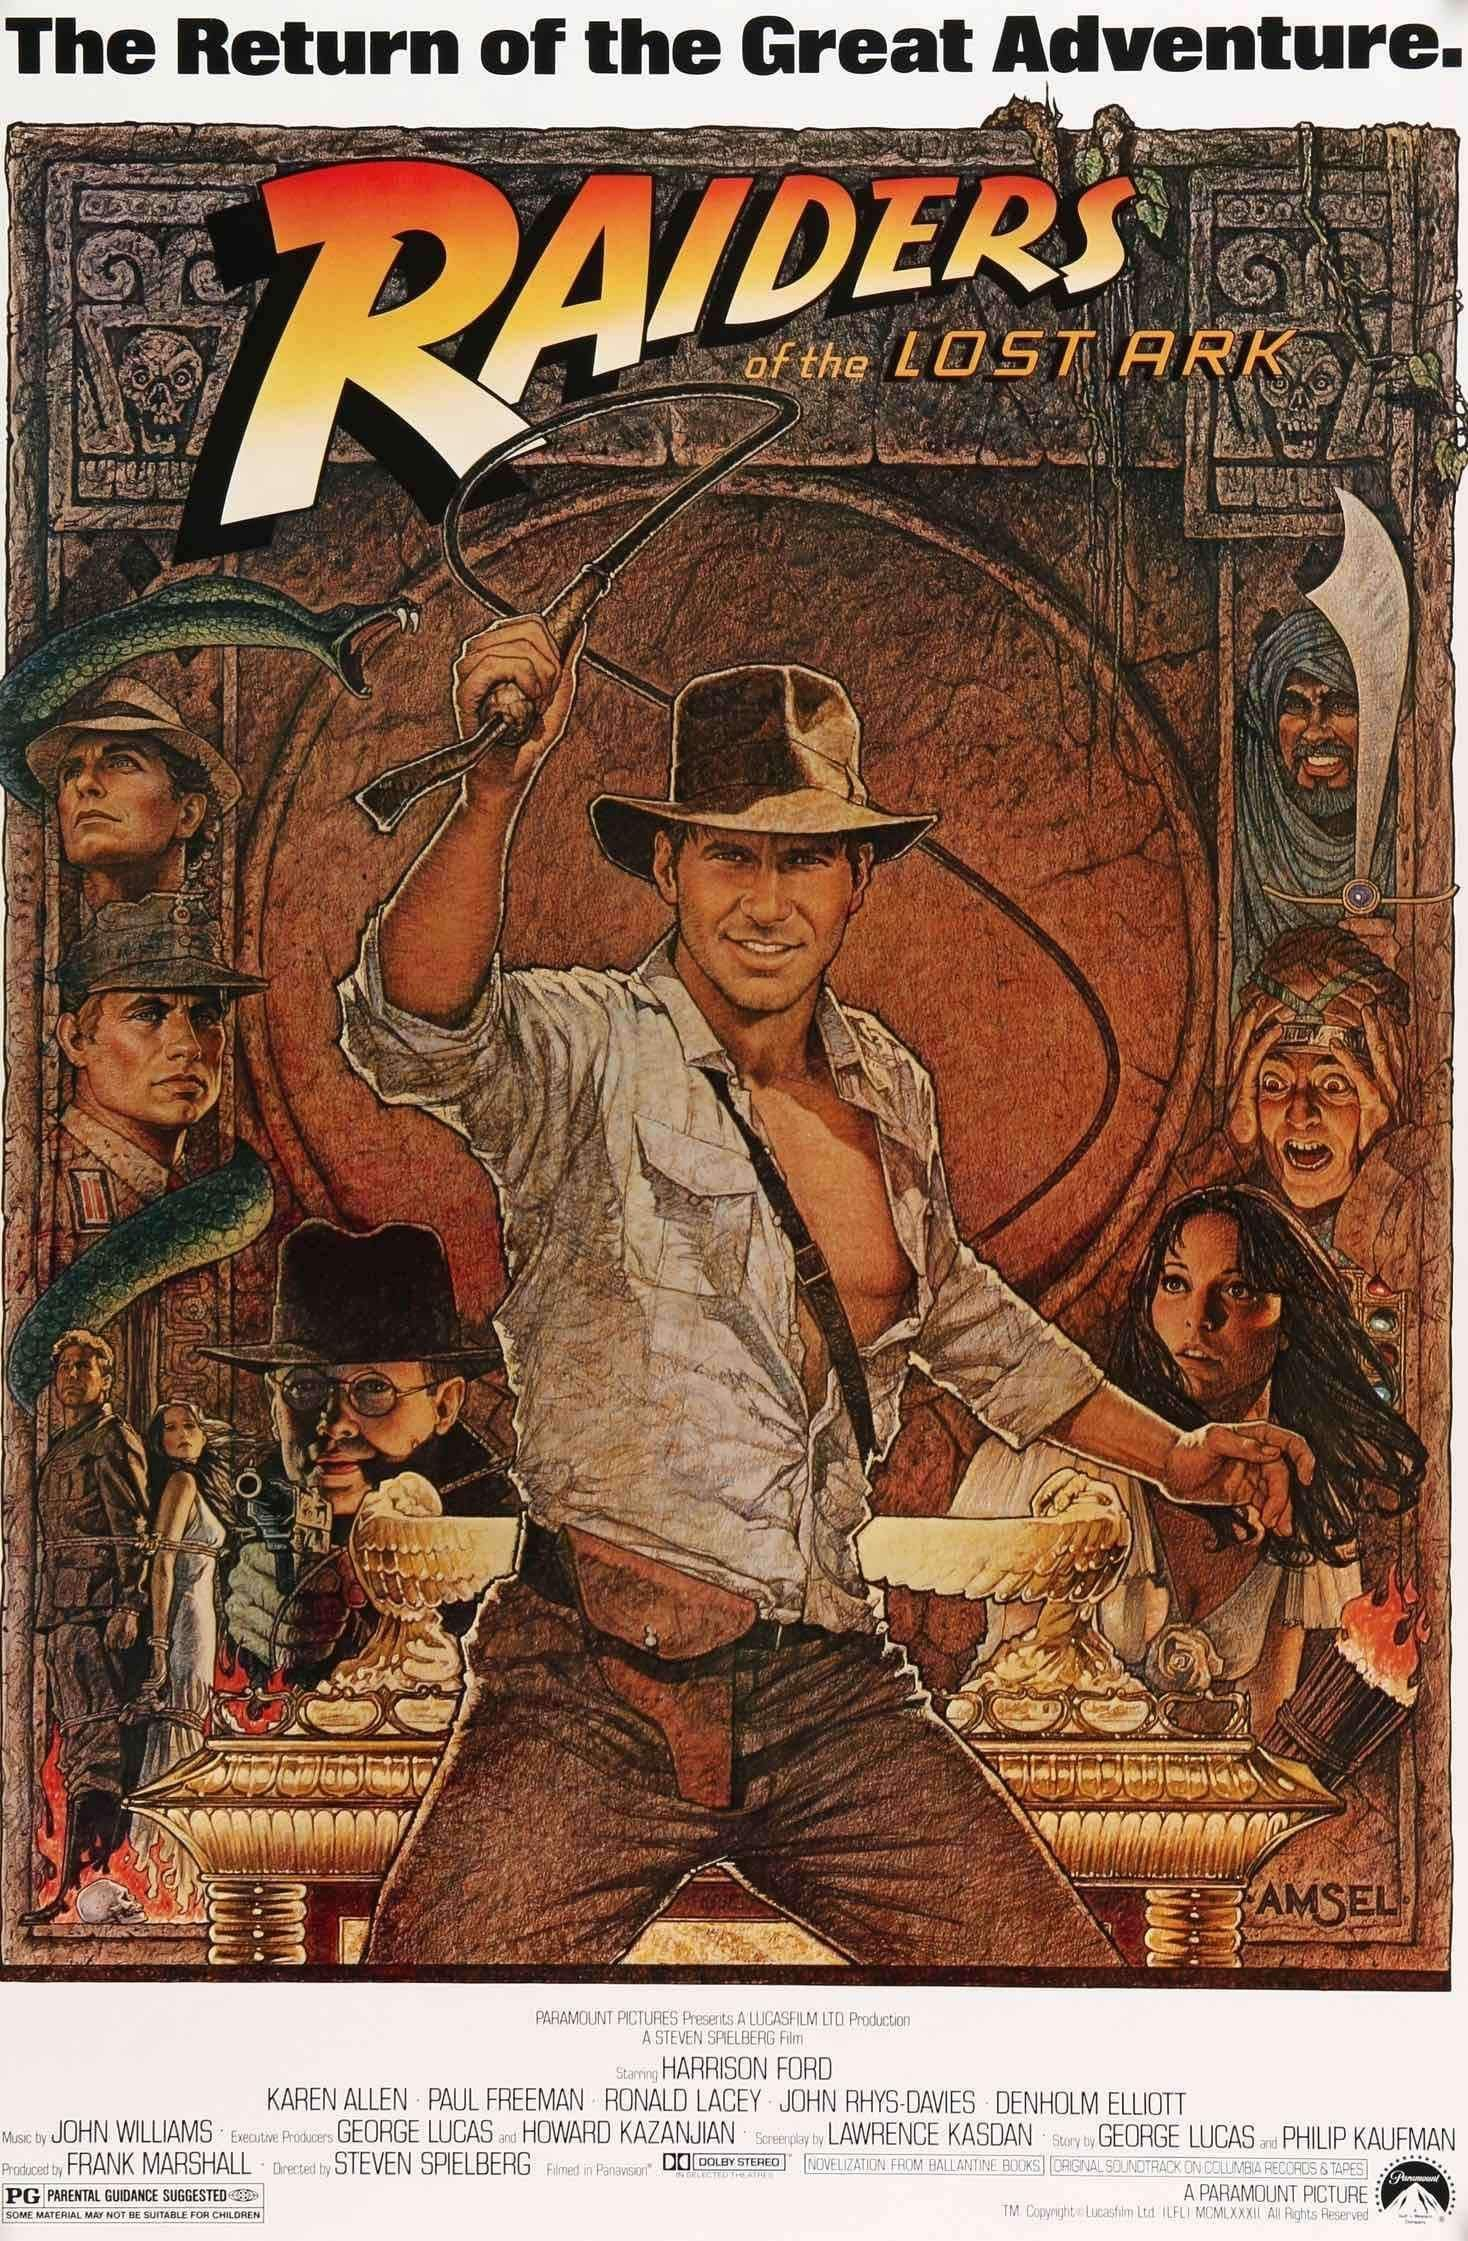 Harrison Ford movie poster print 4 1981 Raiders of the Lost Ark